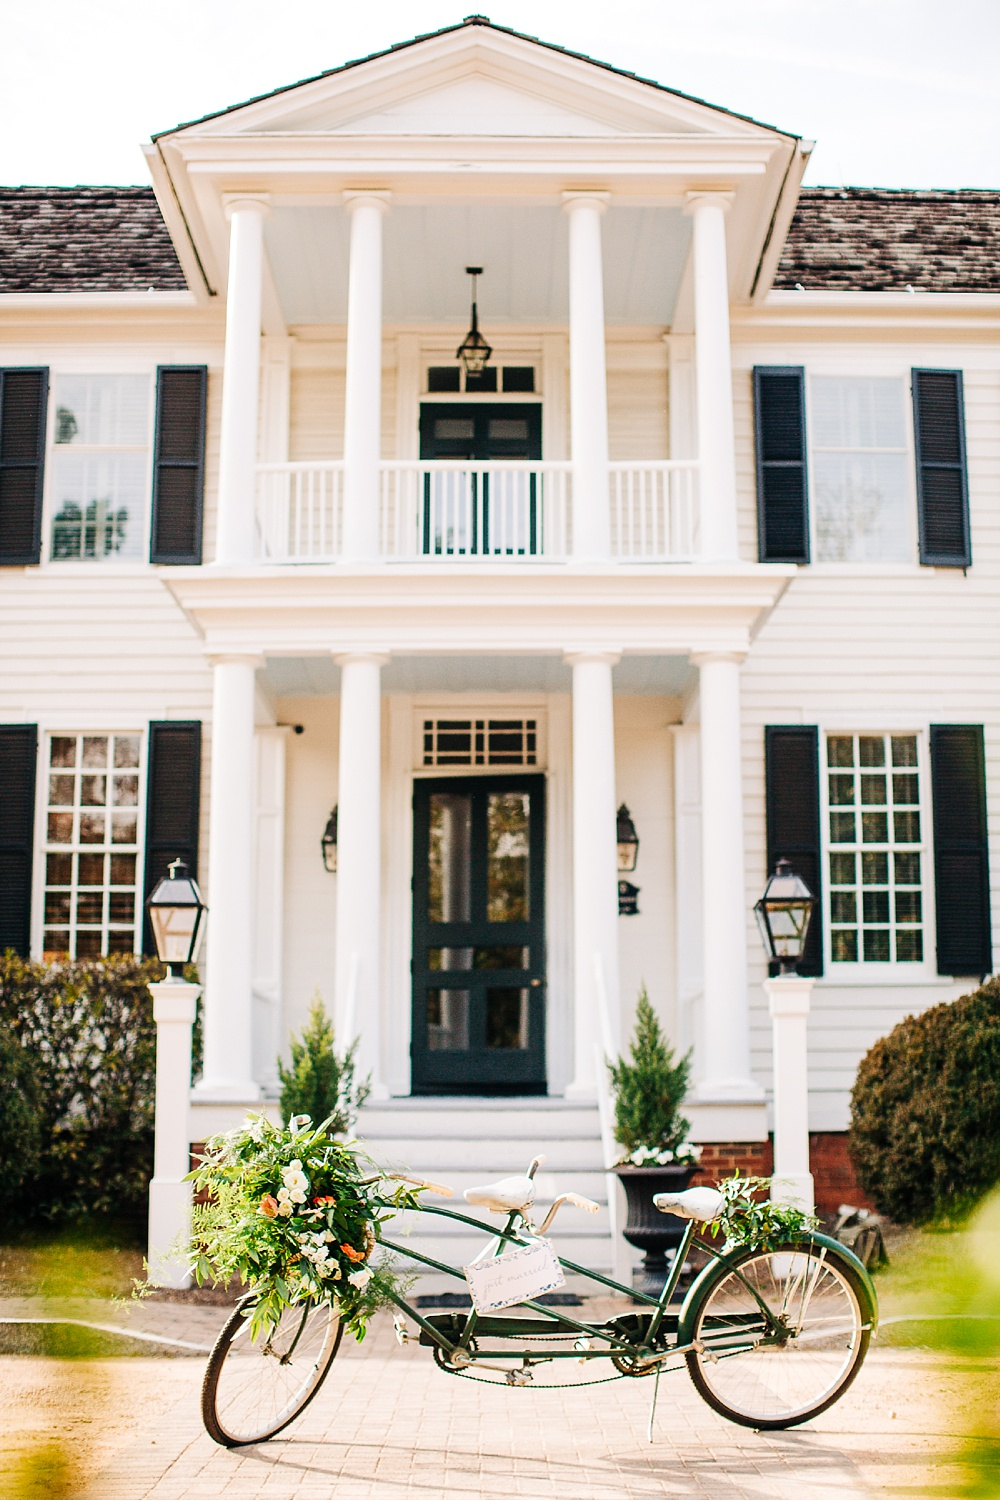 front facade of the sutherland wedding venue in wake forest, nc by rachael bowman photography